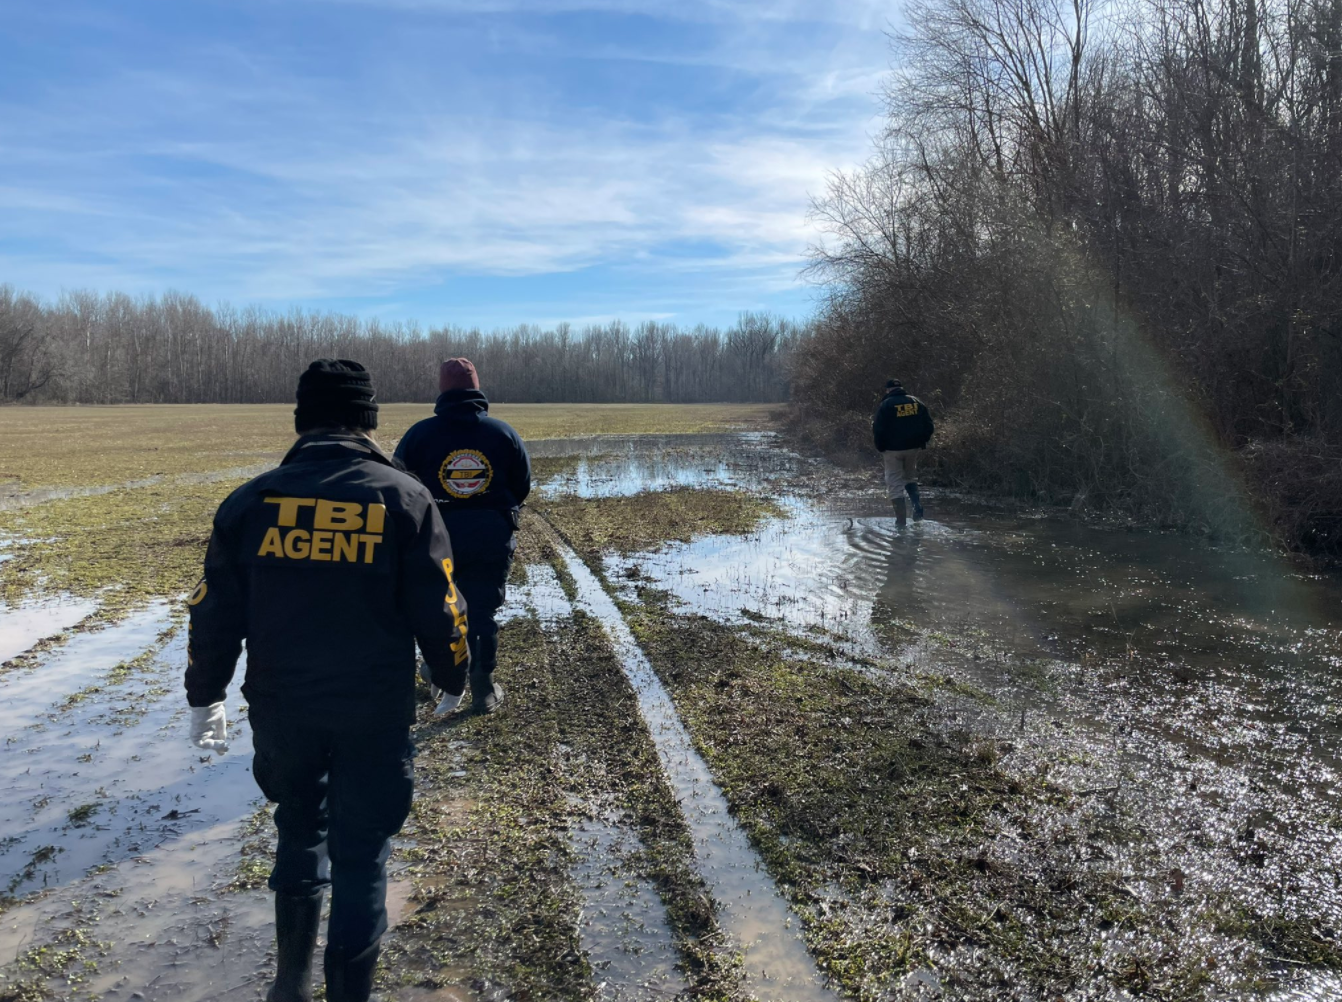 Three men in navy TBI Agent uniforms search a muddy wet field for David Vowell.